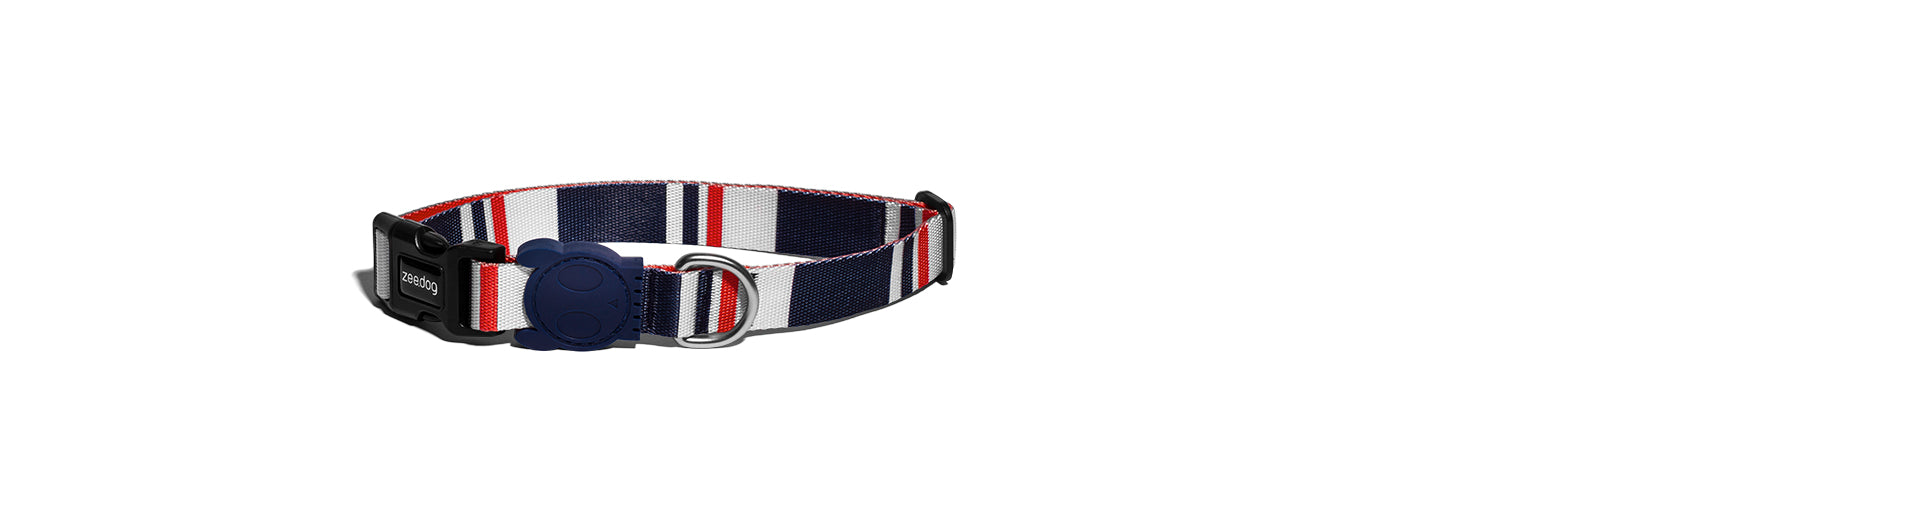 dog-collars-rocket-zee-dog